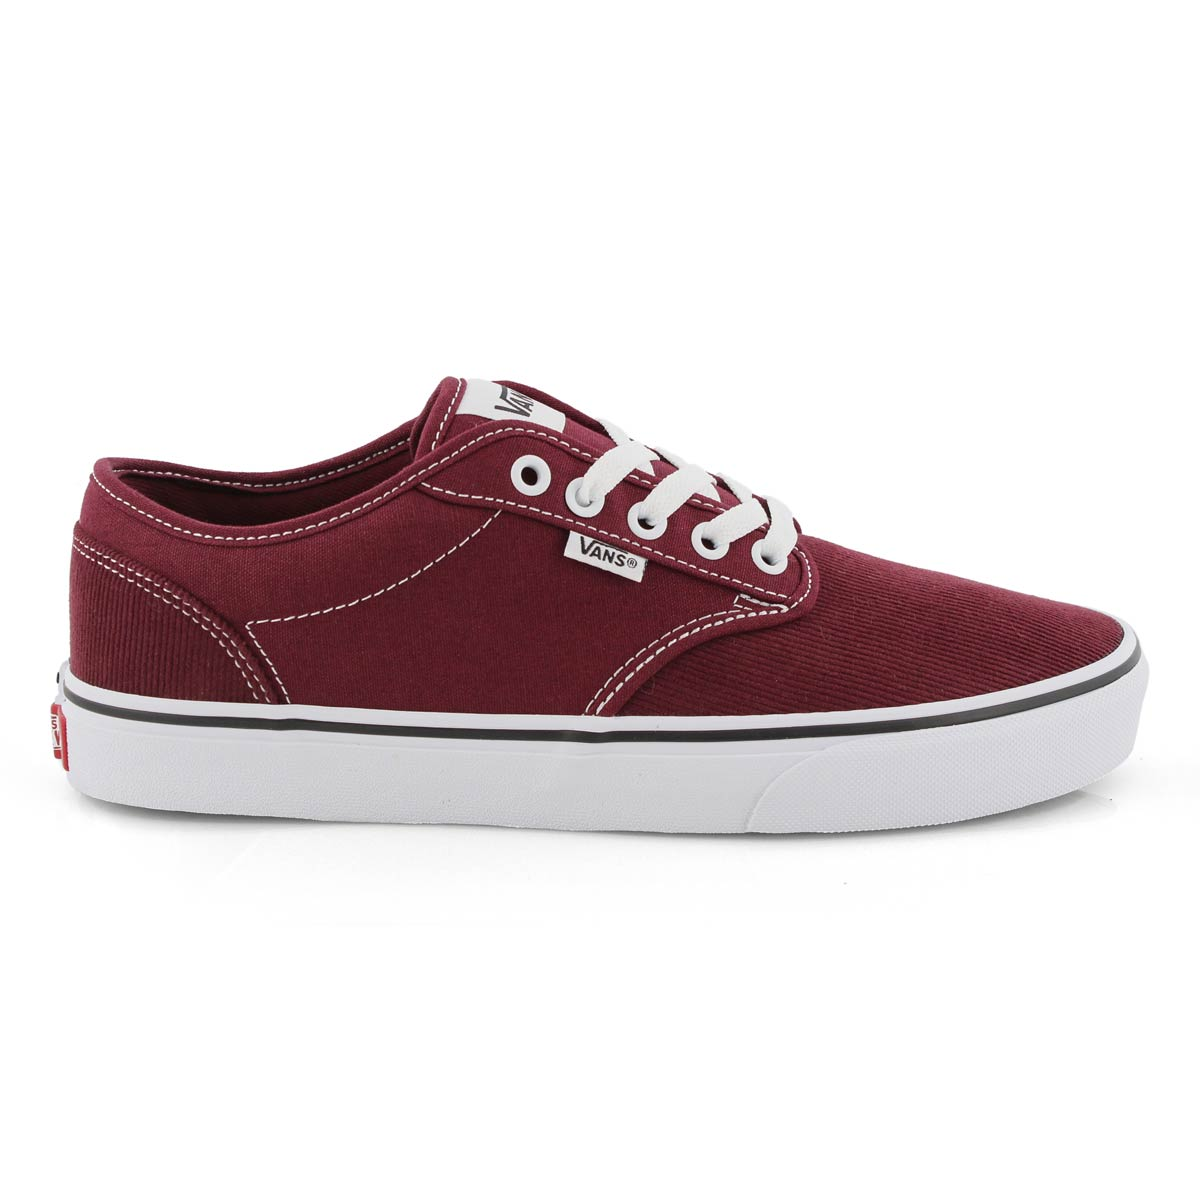 Mns Atwood port royale/wht cord sneaker